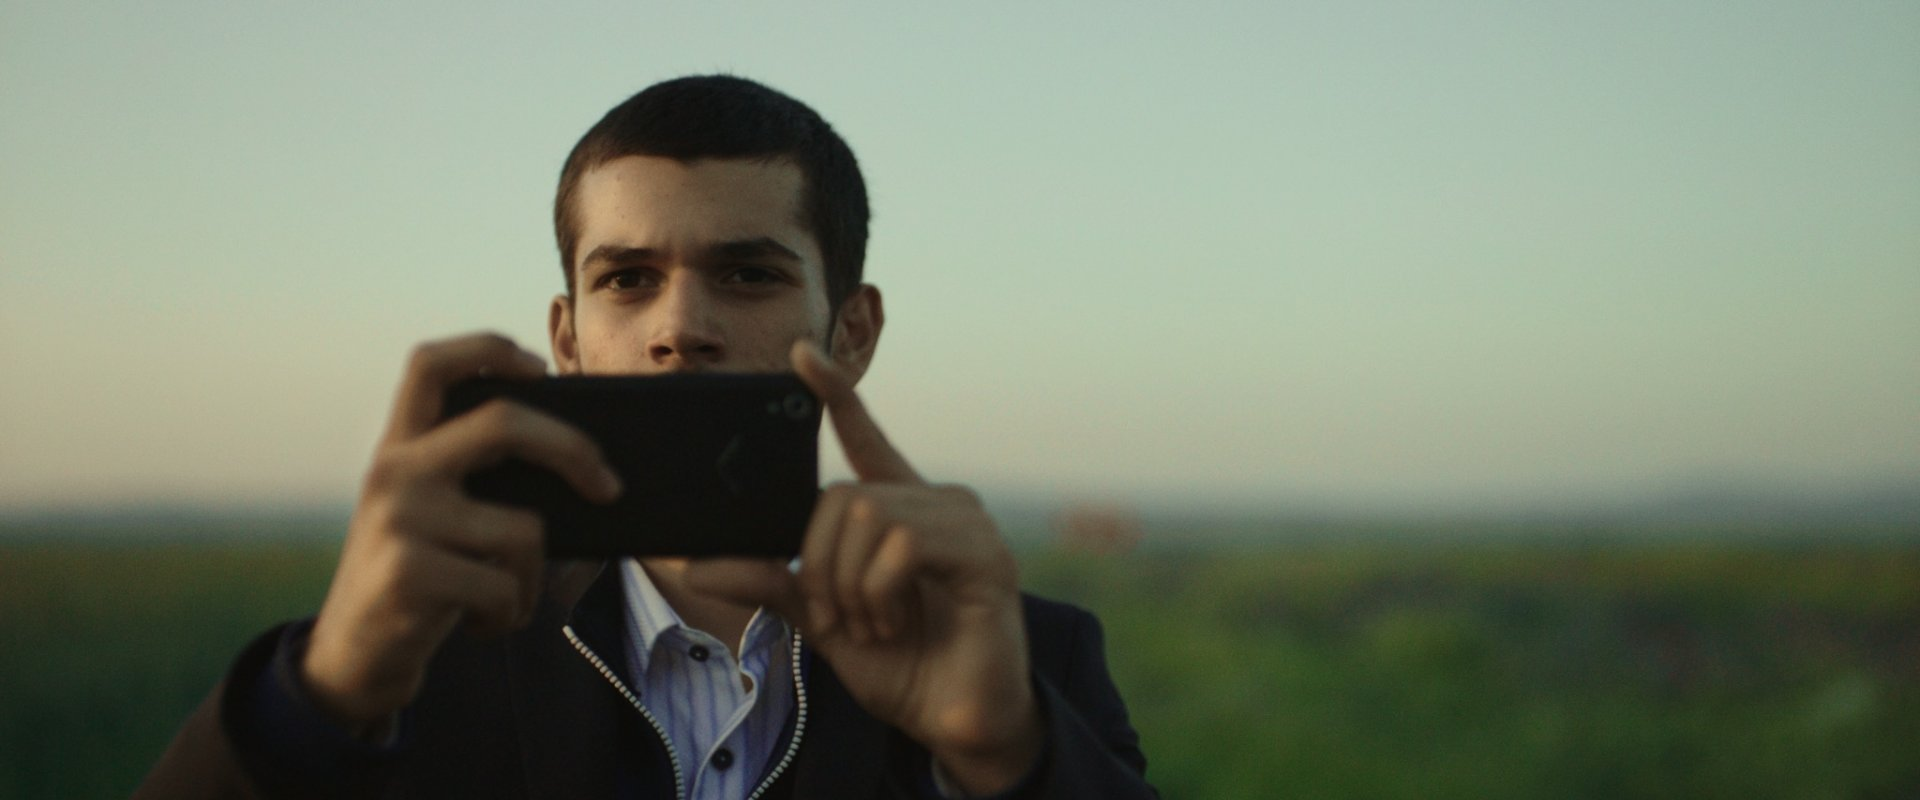 Man with phone-camera close up with exterior landscape in background